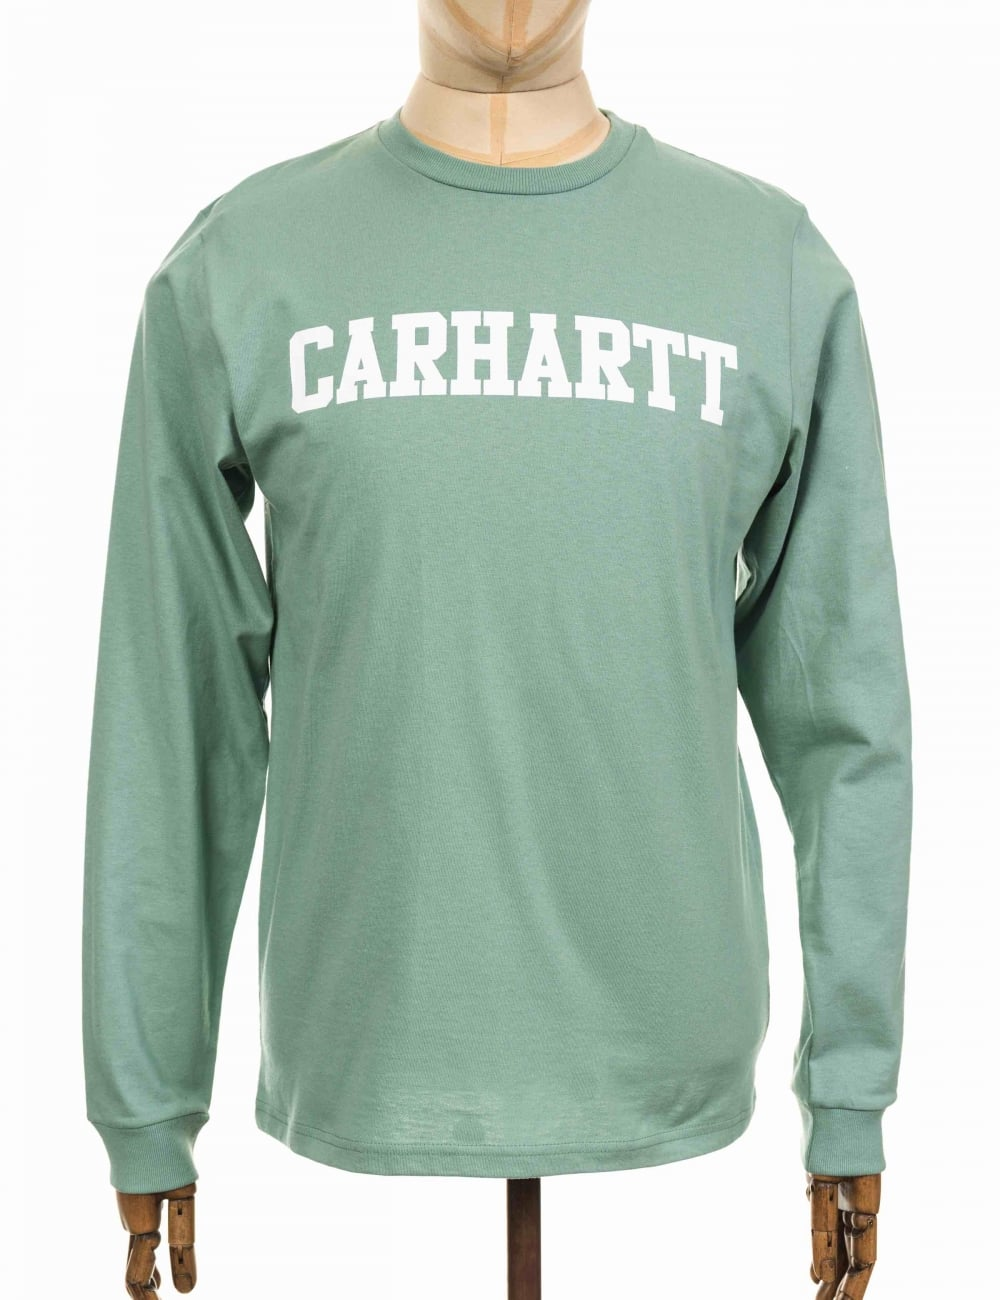 791754d2cc8d Carhartt WIP L/S College T-shirt - Soft Green - T Shirts from Fat ...